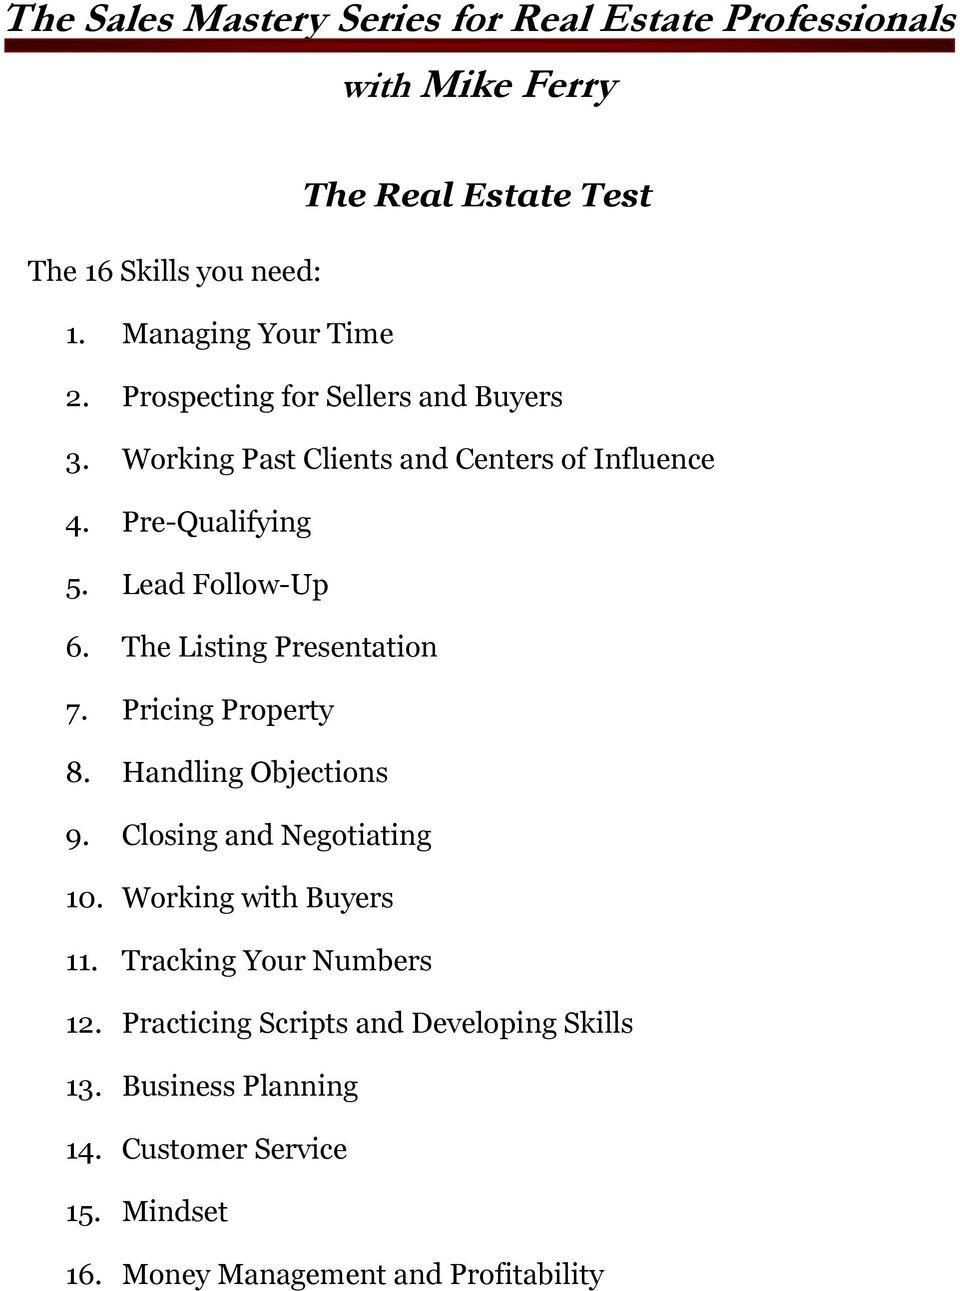 Lead Follow-Up 6. The Listing Presentation 7. Pricing Property 8. Handling Objections 9. Closing and Negotiating 10.